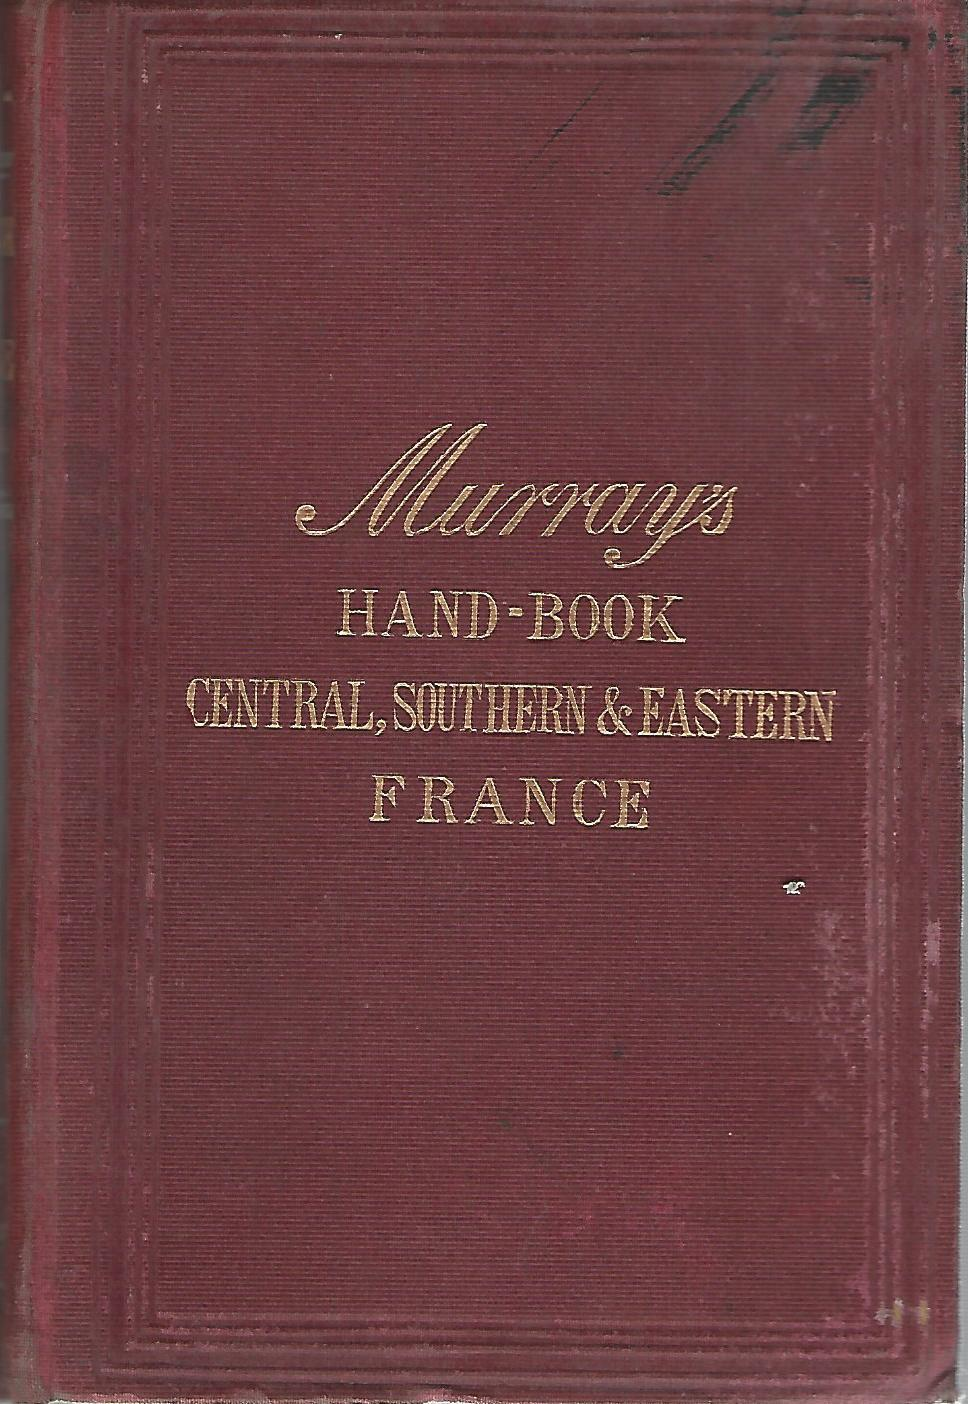 Image for A Handbook for Travellers in France Part II, Containing: Artois, Champagne, Lorraine, Alsace and the Vosges, Burgundy, Lyons, Marseilles and the Rhone, Franche-Comte, Dauphine, The French Alps, Provence and Nice.